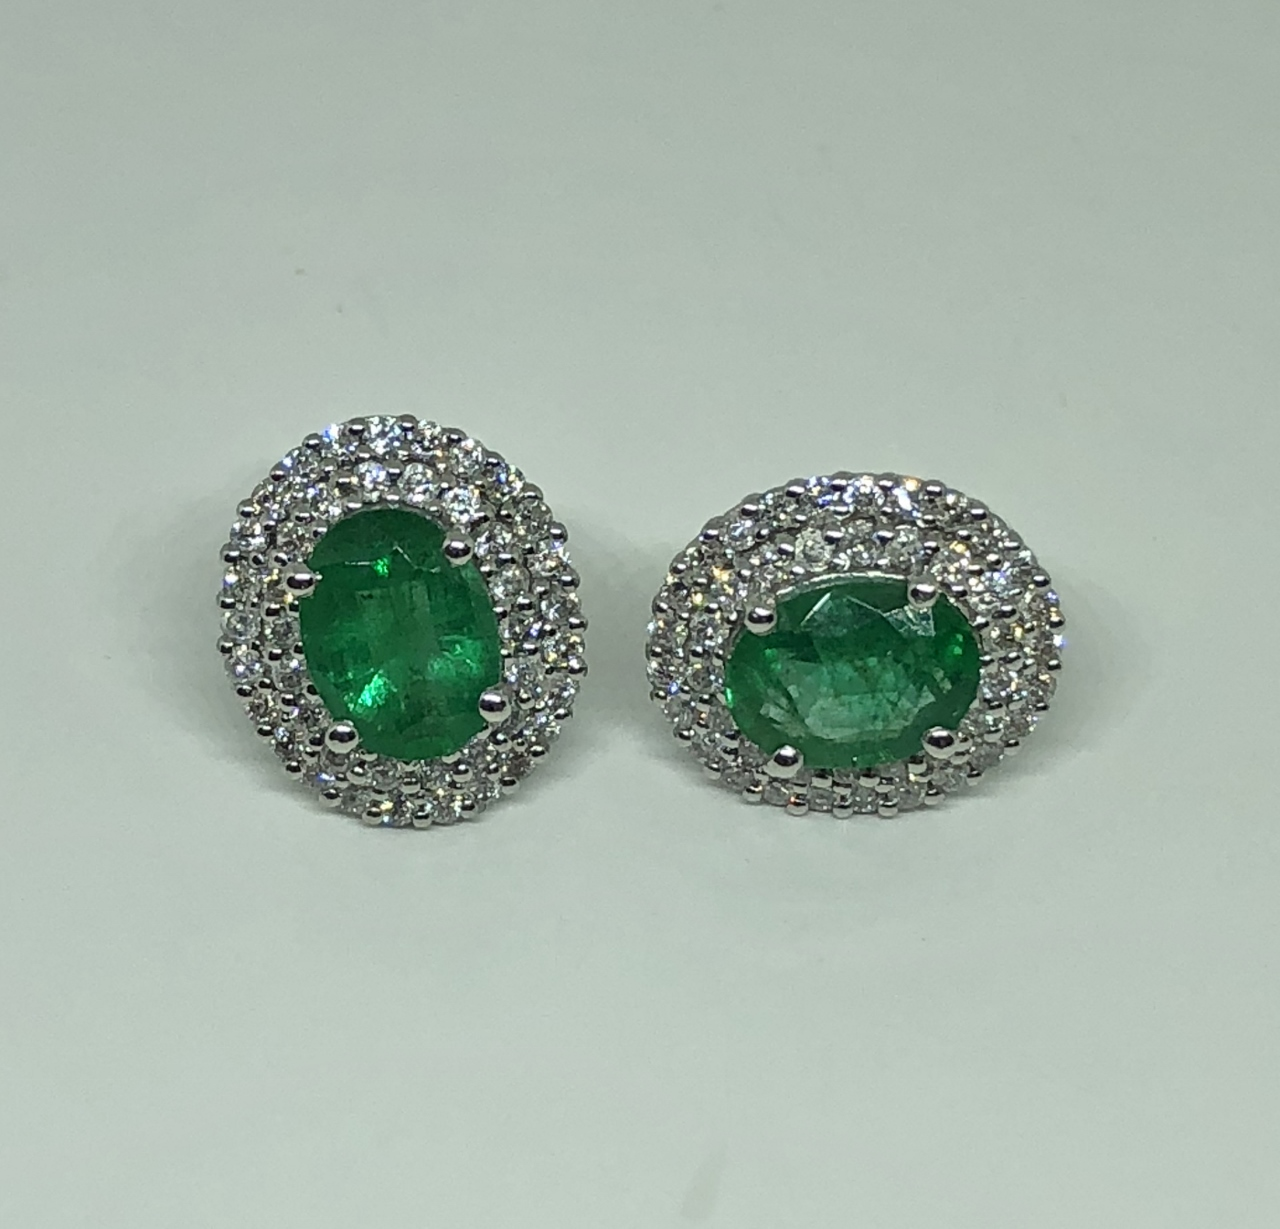 2 Carats Total Weight Emerald Diamond Earrings